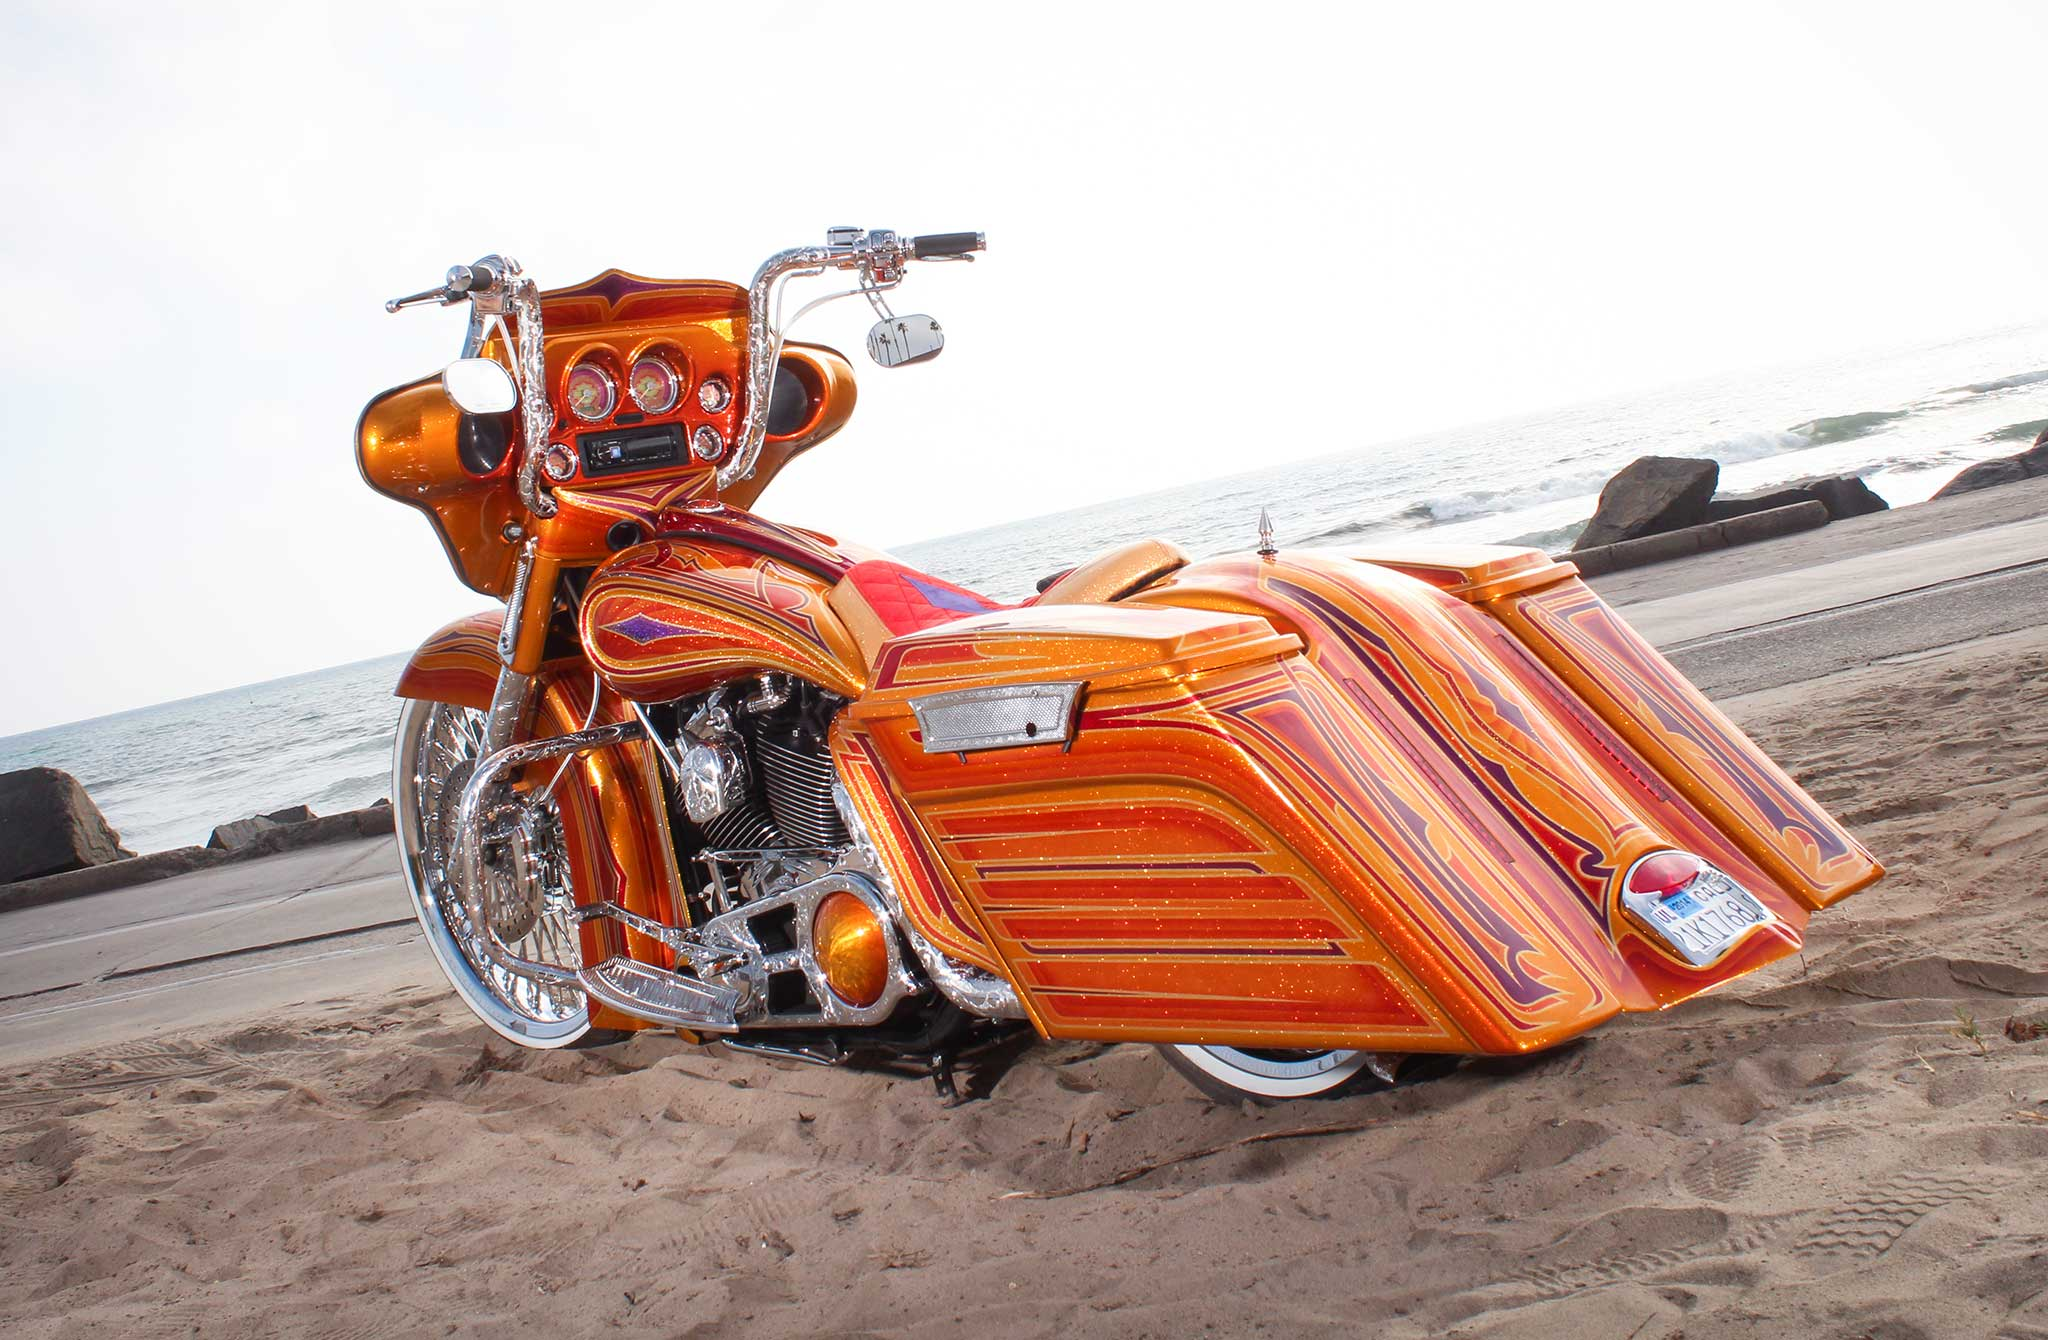 2006 harley davidson street glide chicano style. Black Bedroom Furniture Sets. Home Design Ideas